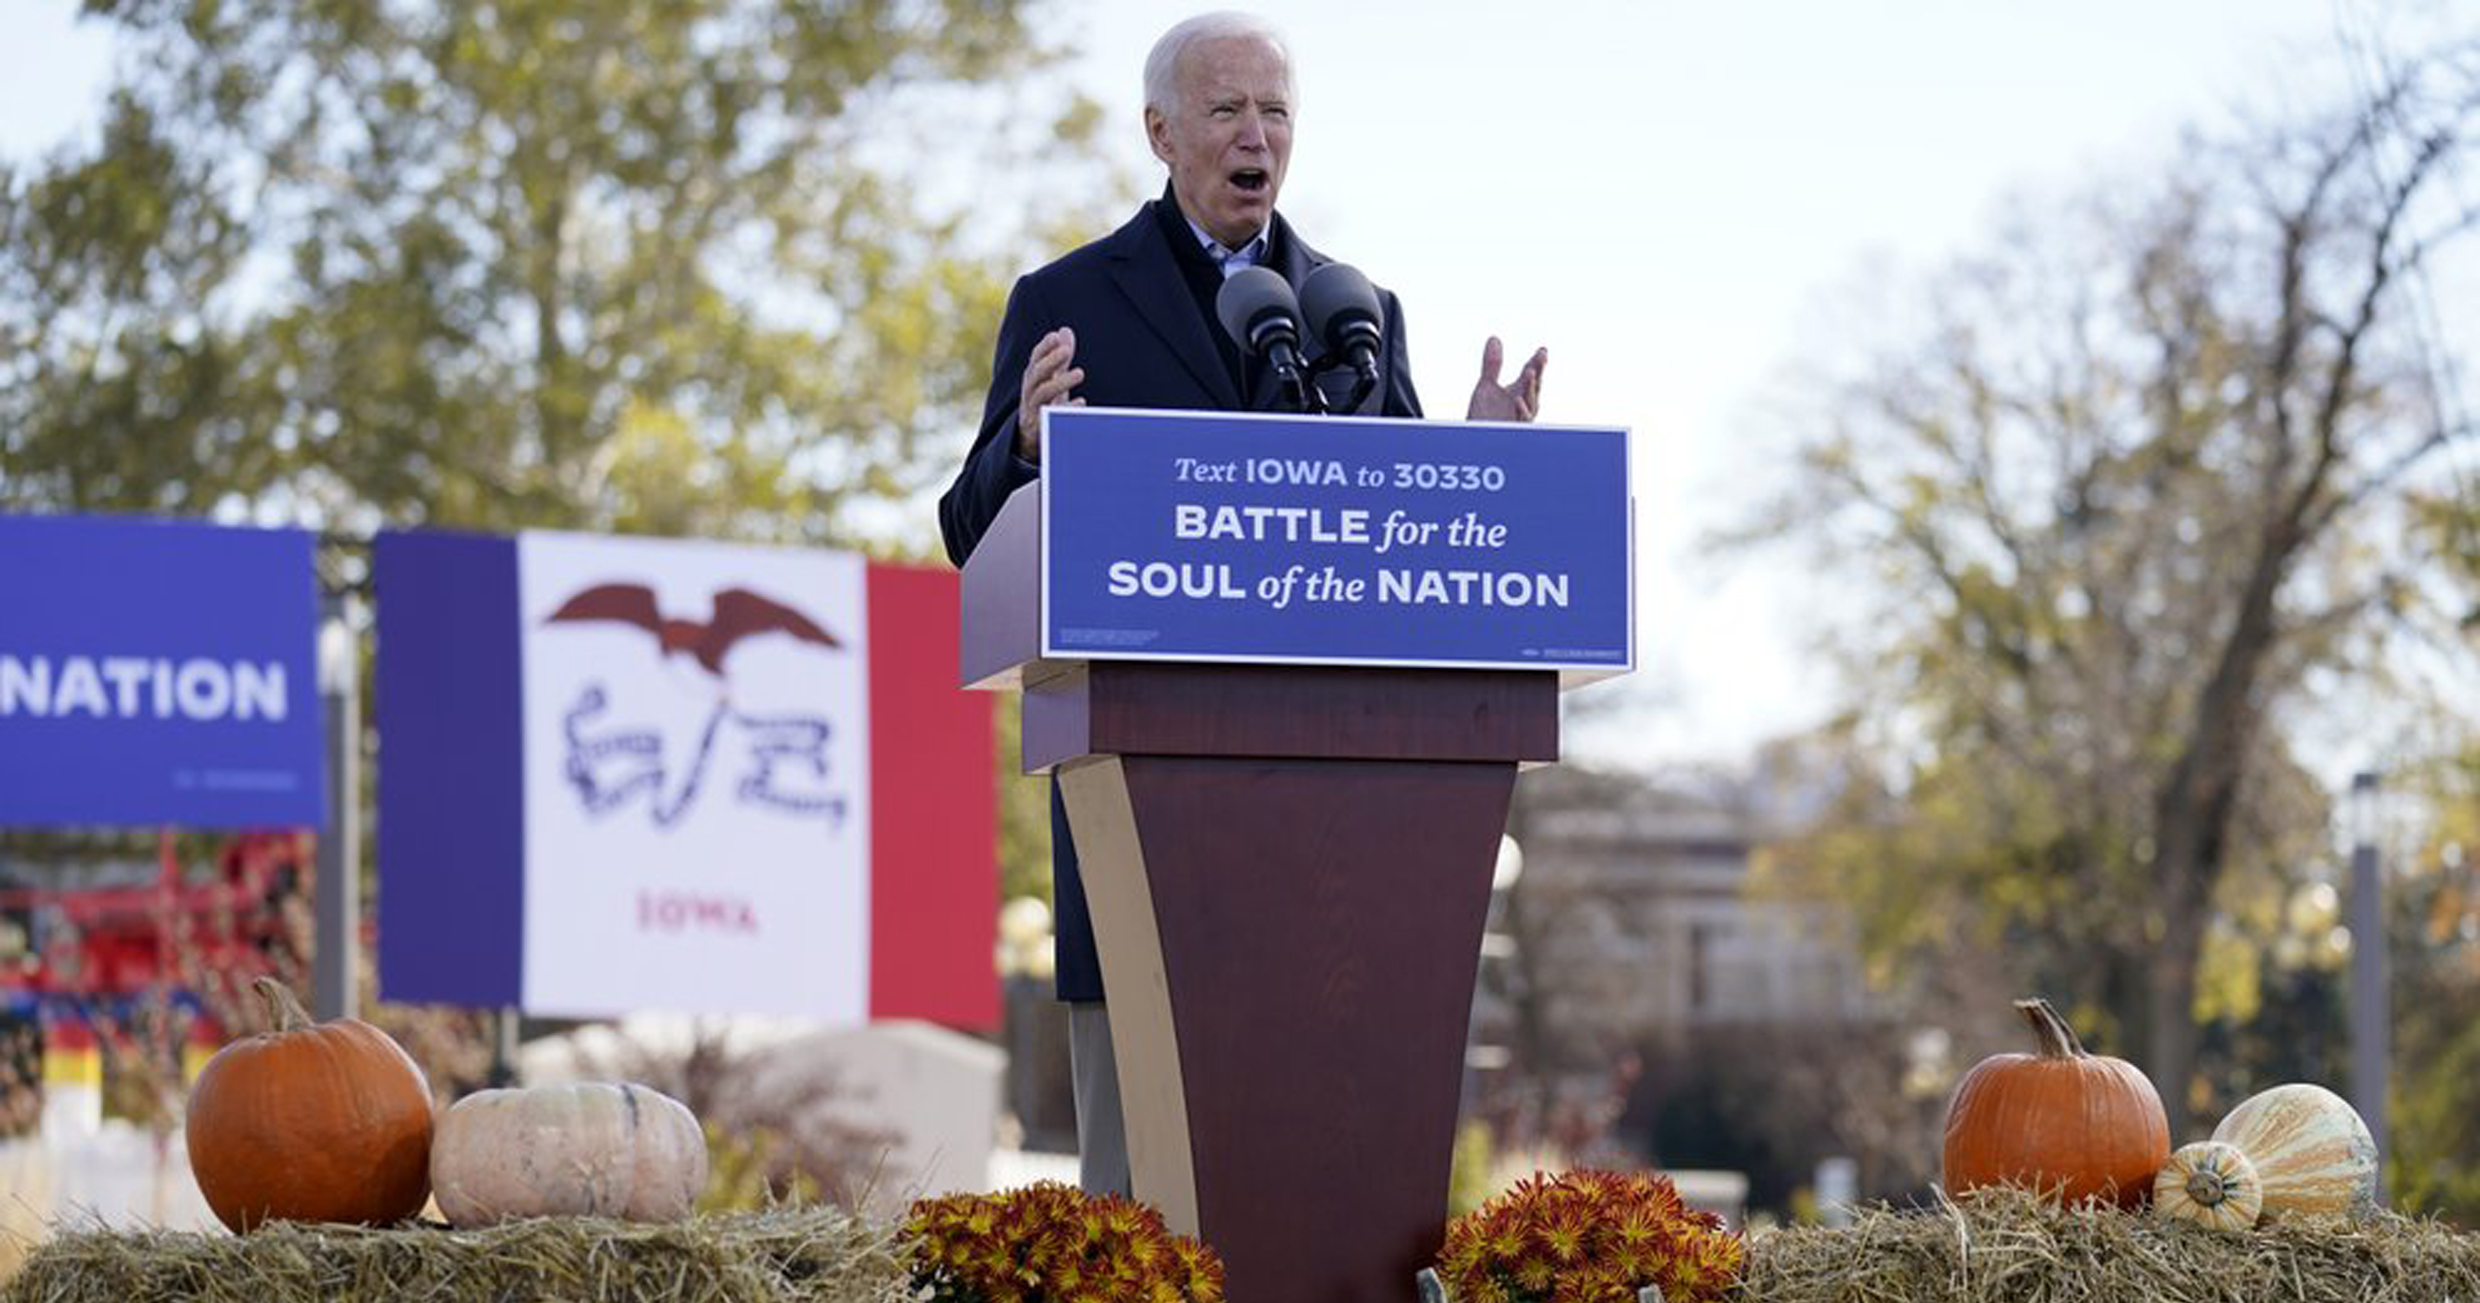 ventdouxprod nicolas barbier 2020 biden supports a conventional agriculture that pollutes the environment and damages people's health i voted for joe